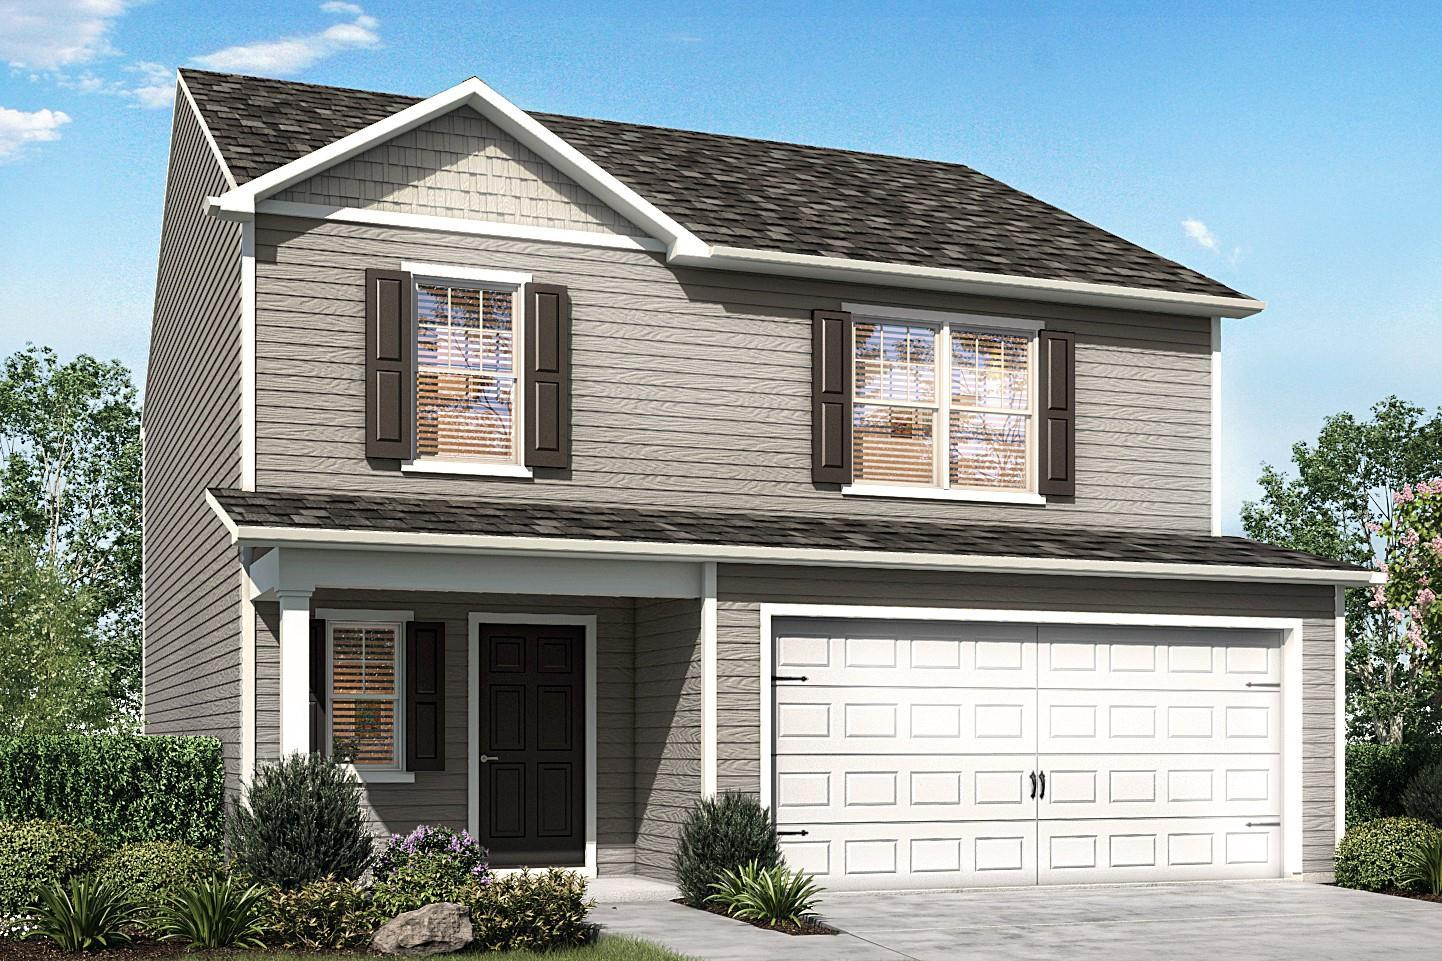 LGI Homes at Anneewakee Trails